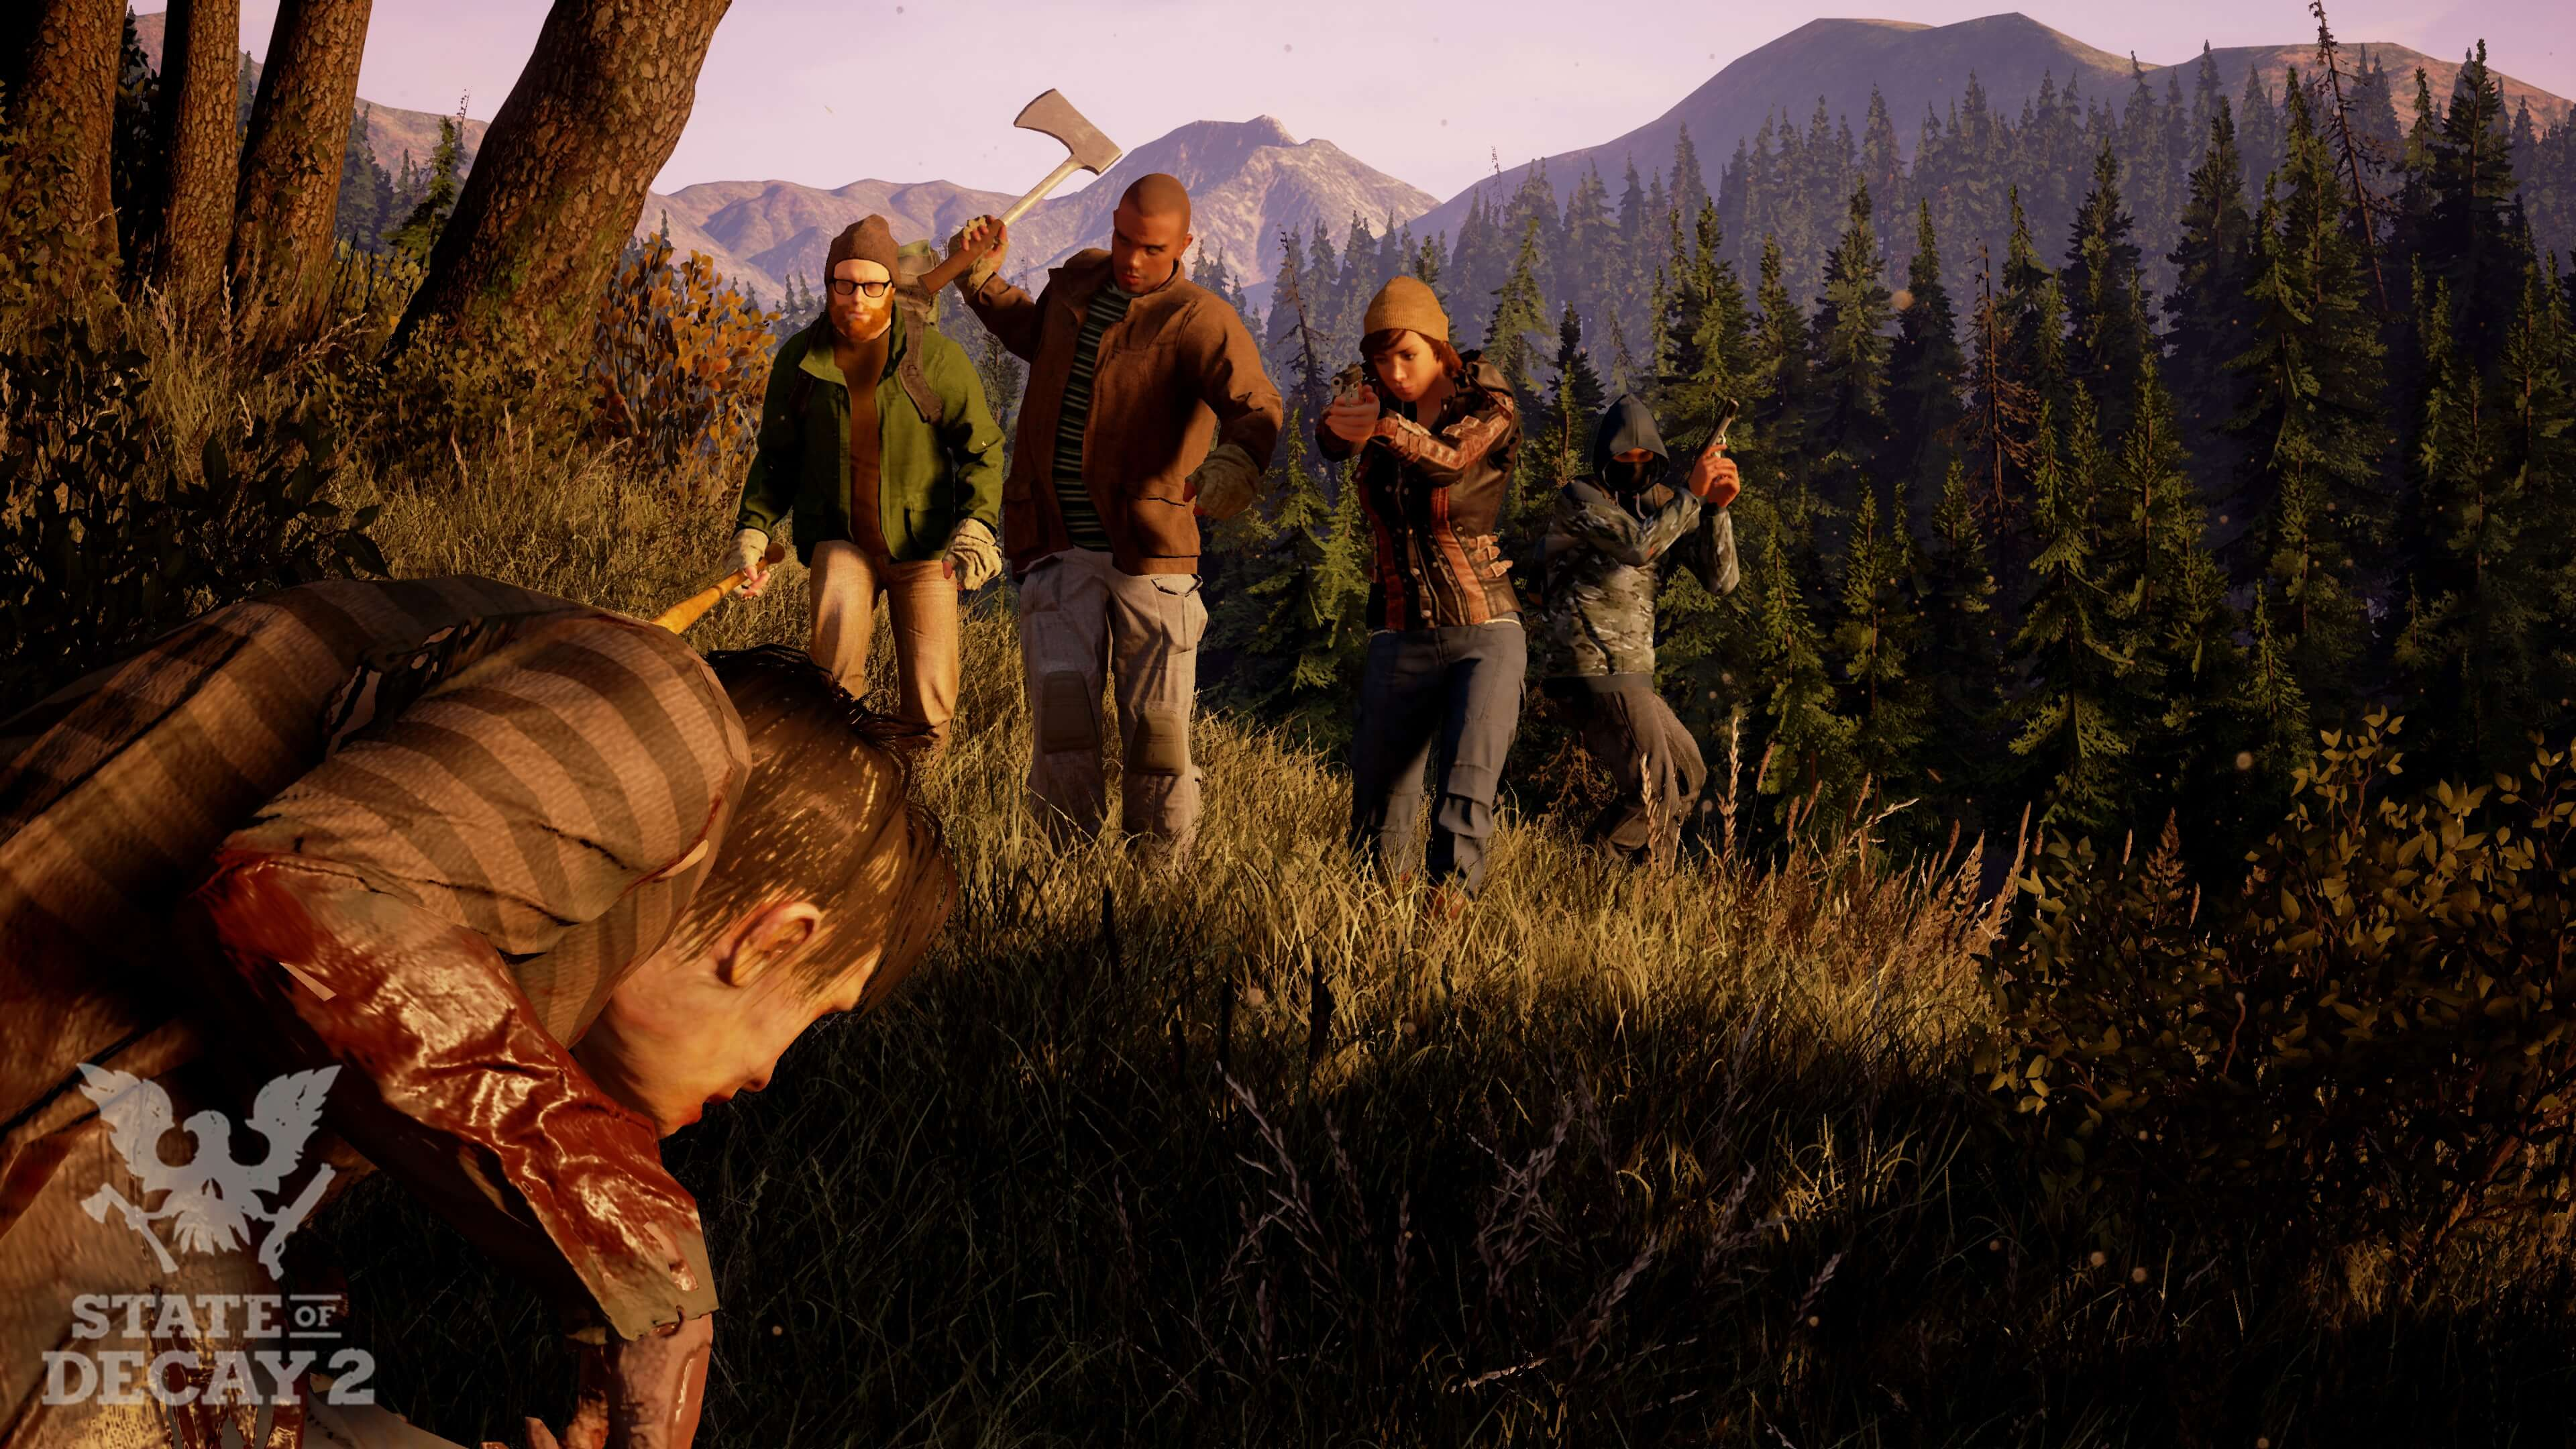 State of Decay 2 female characters